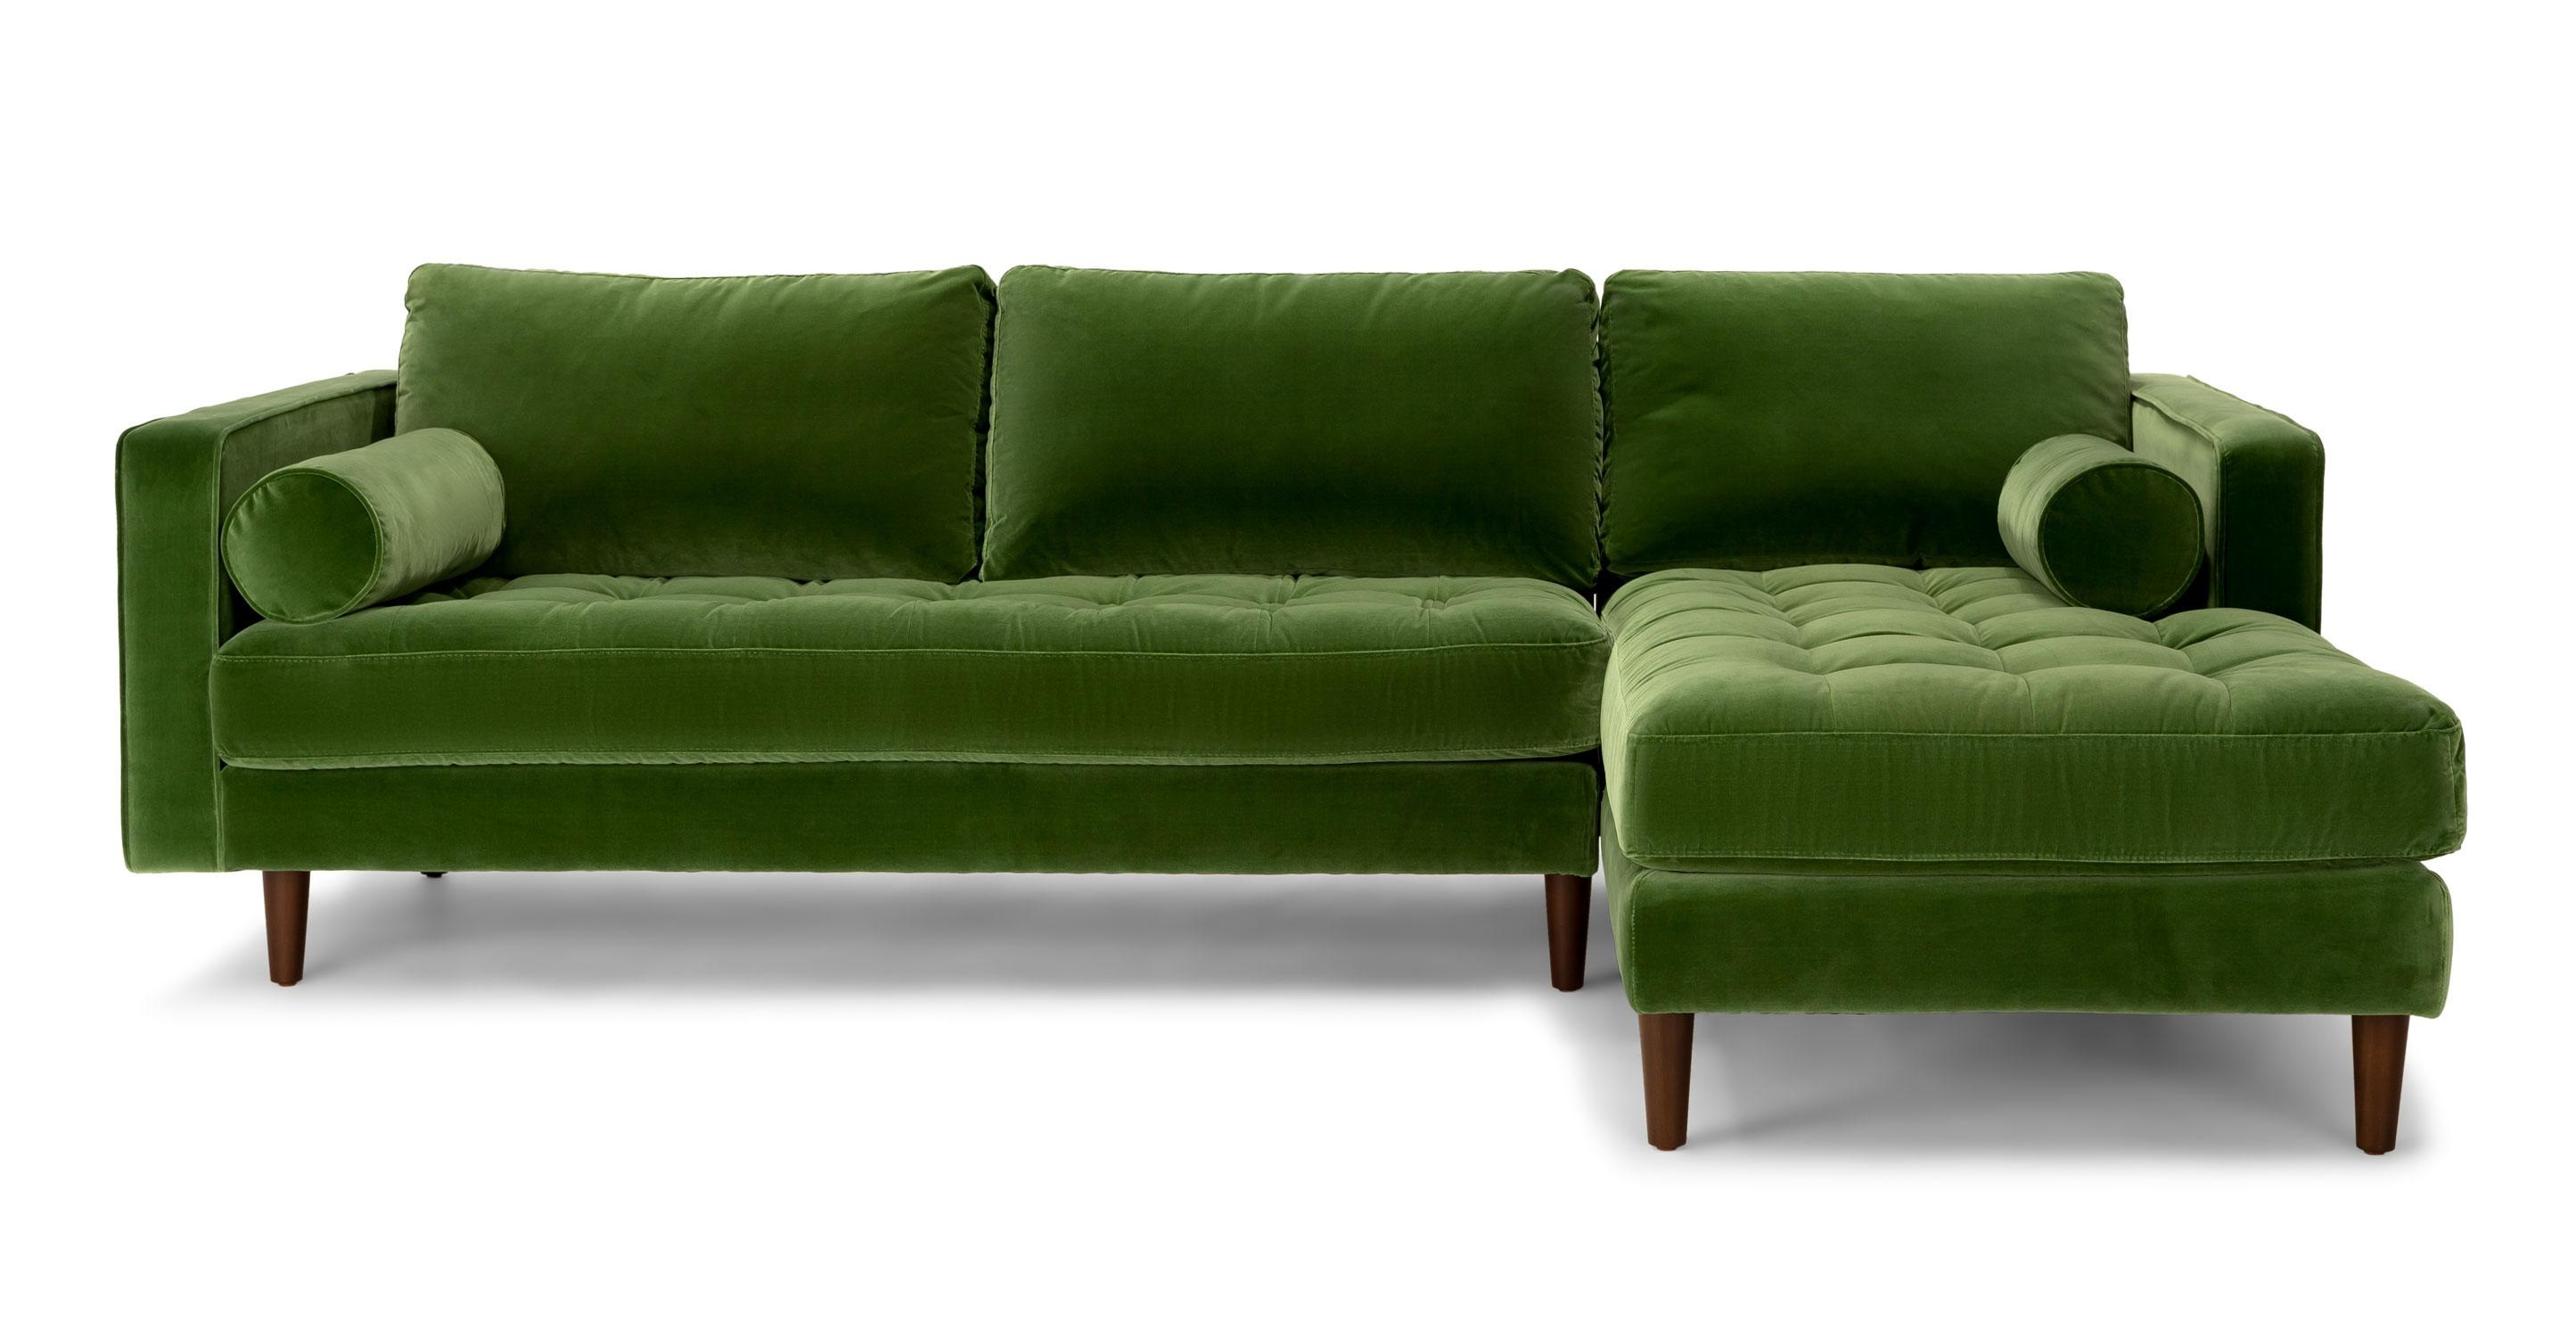 Sofas Center : Excellent Greenectionalofa Photos Inspirations Best Inside Green Sectional Sofa With Chaise (View 9 of 15)